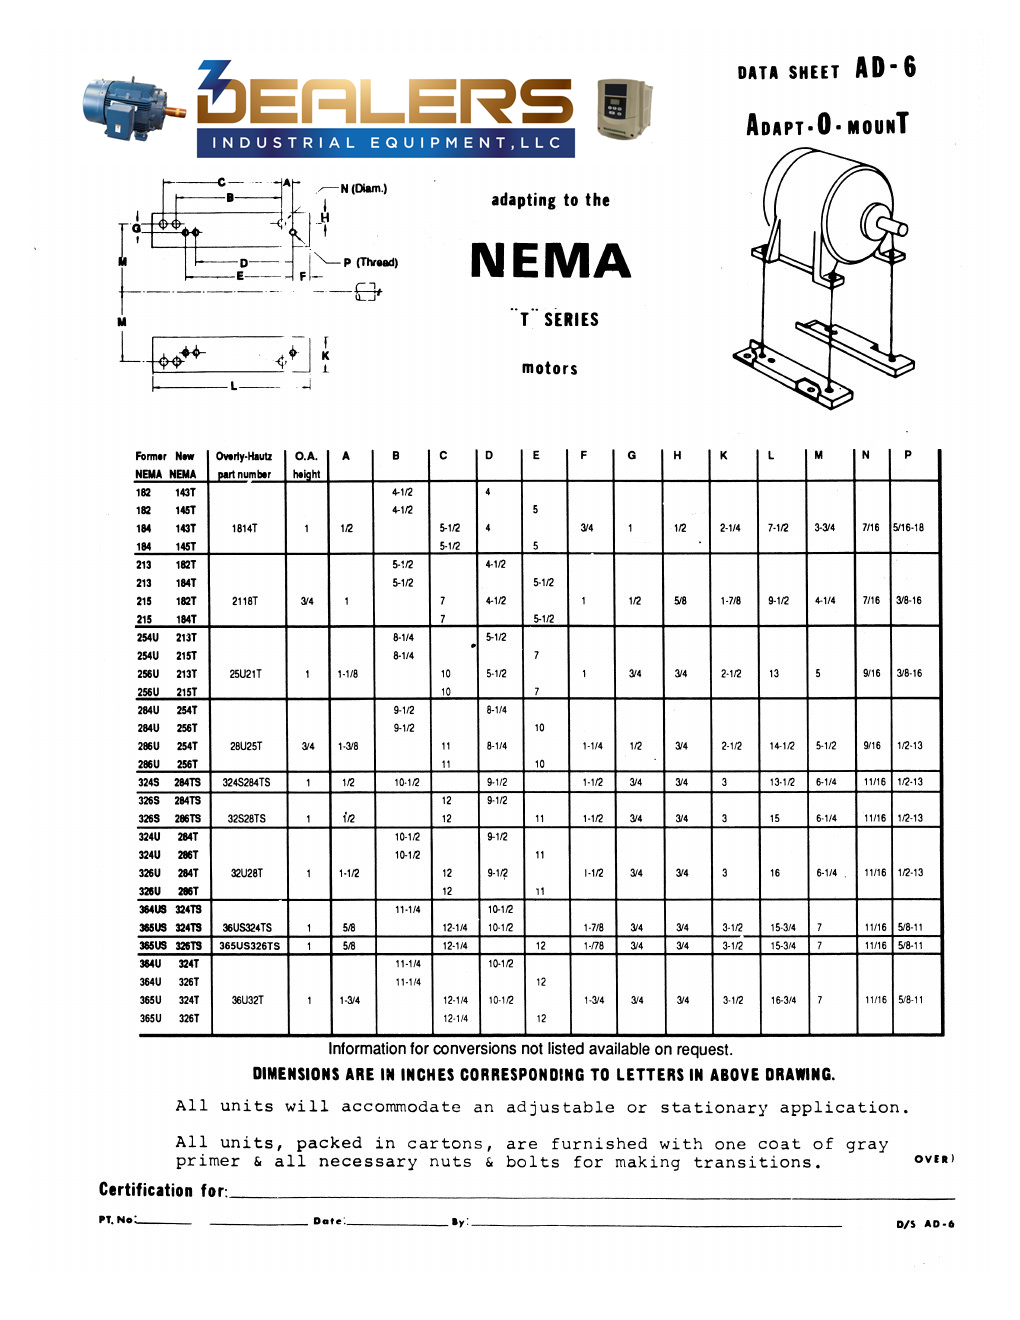 Nema If A Motor Does Not Have Frame Size On The Nameplate